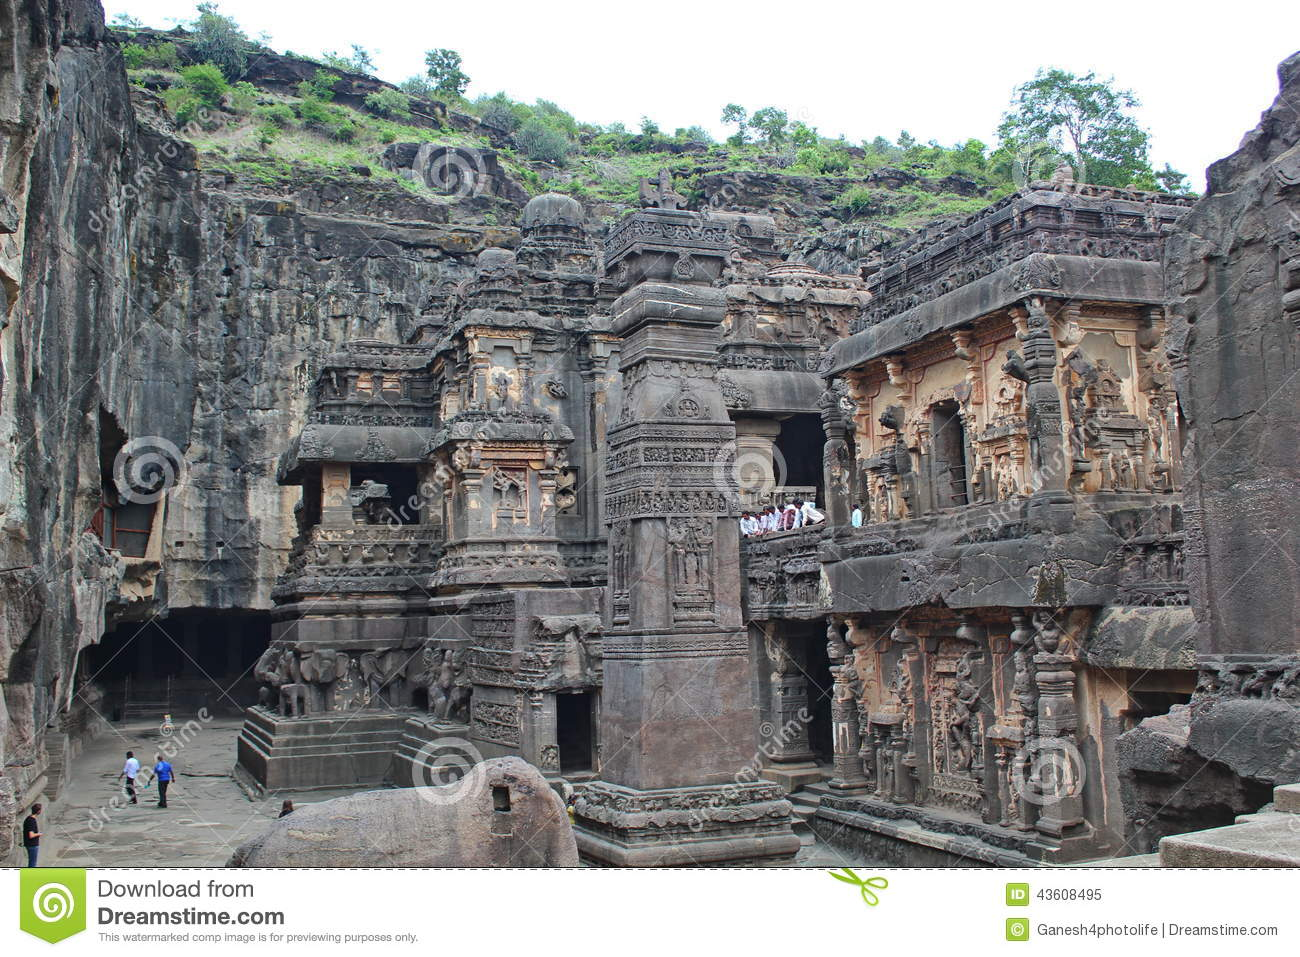 aurangabad hindu dating site India/aurangabad/ajanta caves part 50  the last dating from a period  can be related to the later hindu ellora caves and other sites.